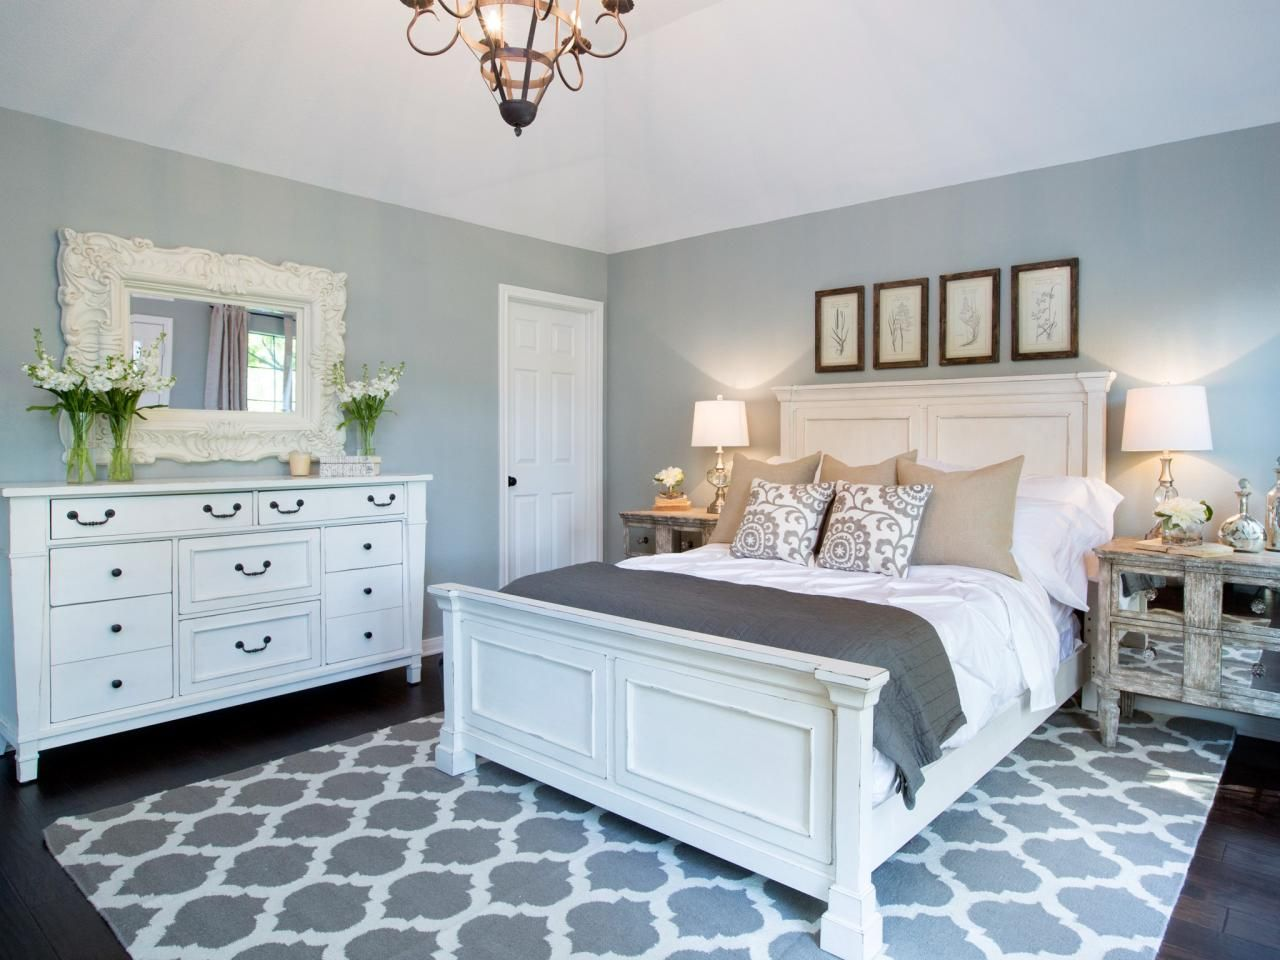 Master Bedroom Furniture Ideas Photos  Hgtv's Fixer Upper With Chip And Joanna Gaines  Hgtv